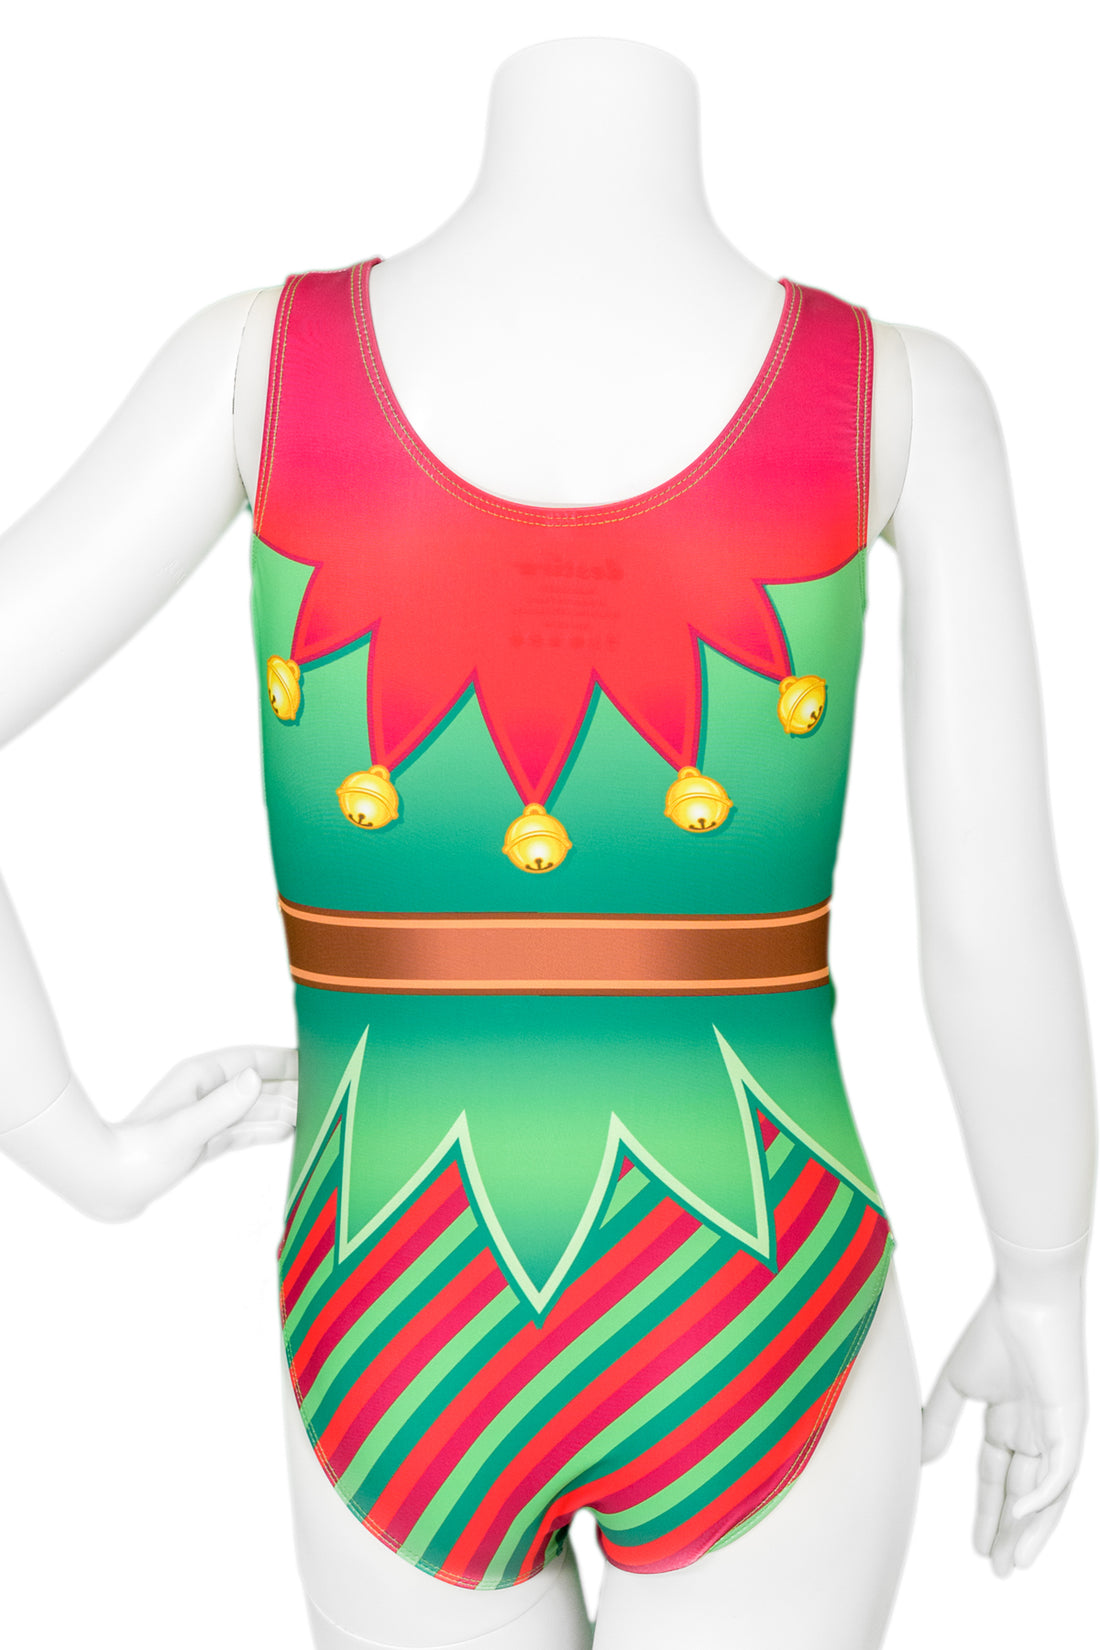 Gym Elf Leotard